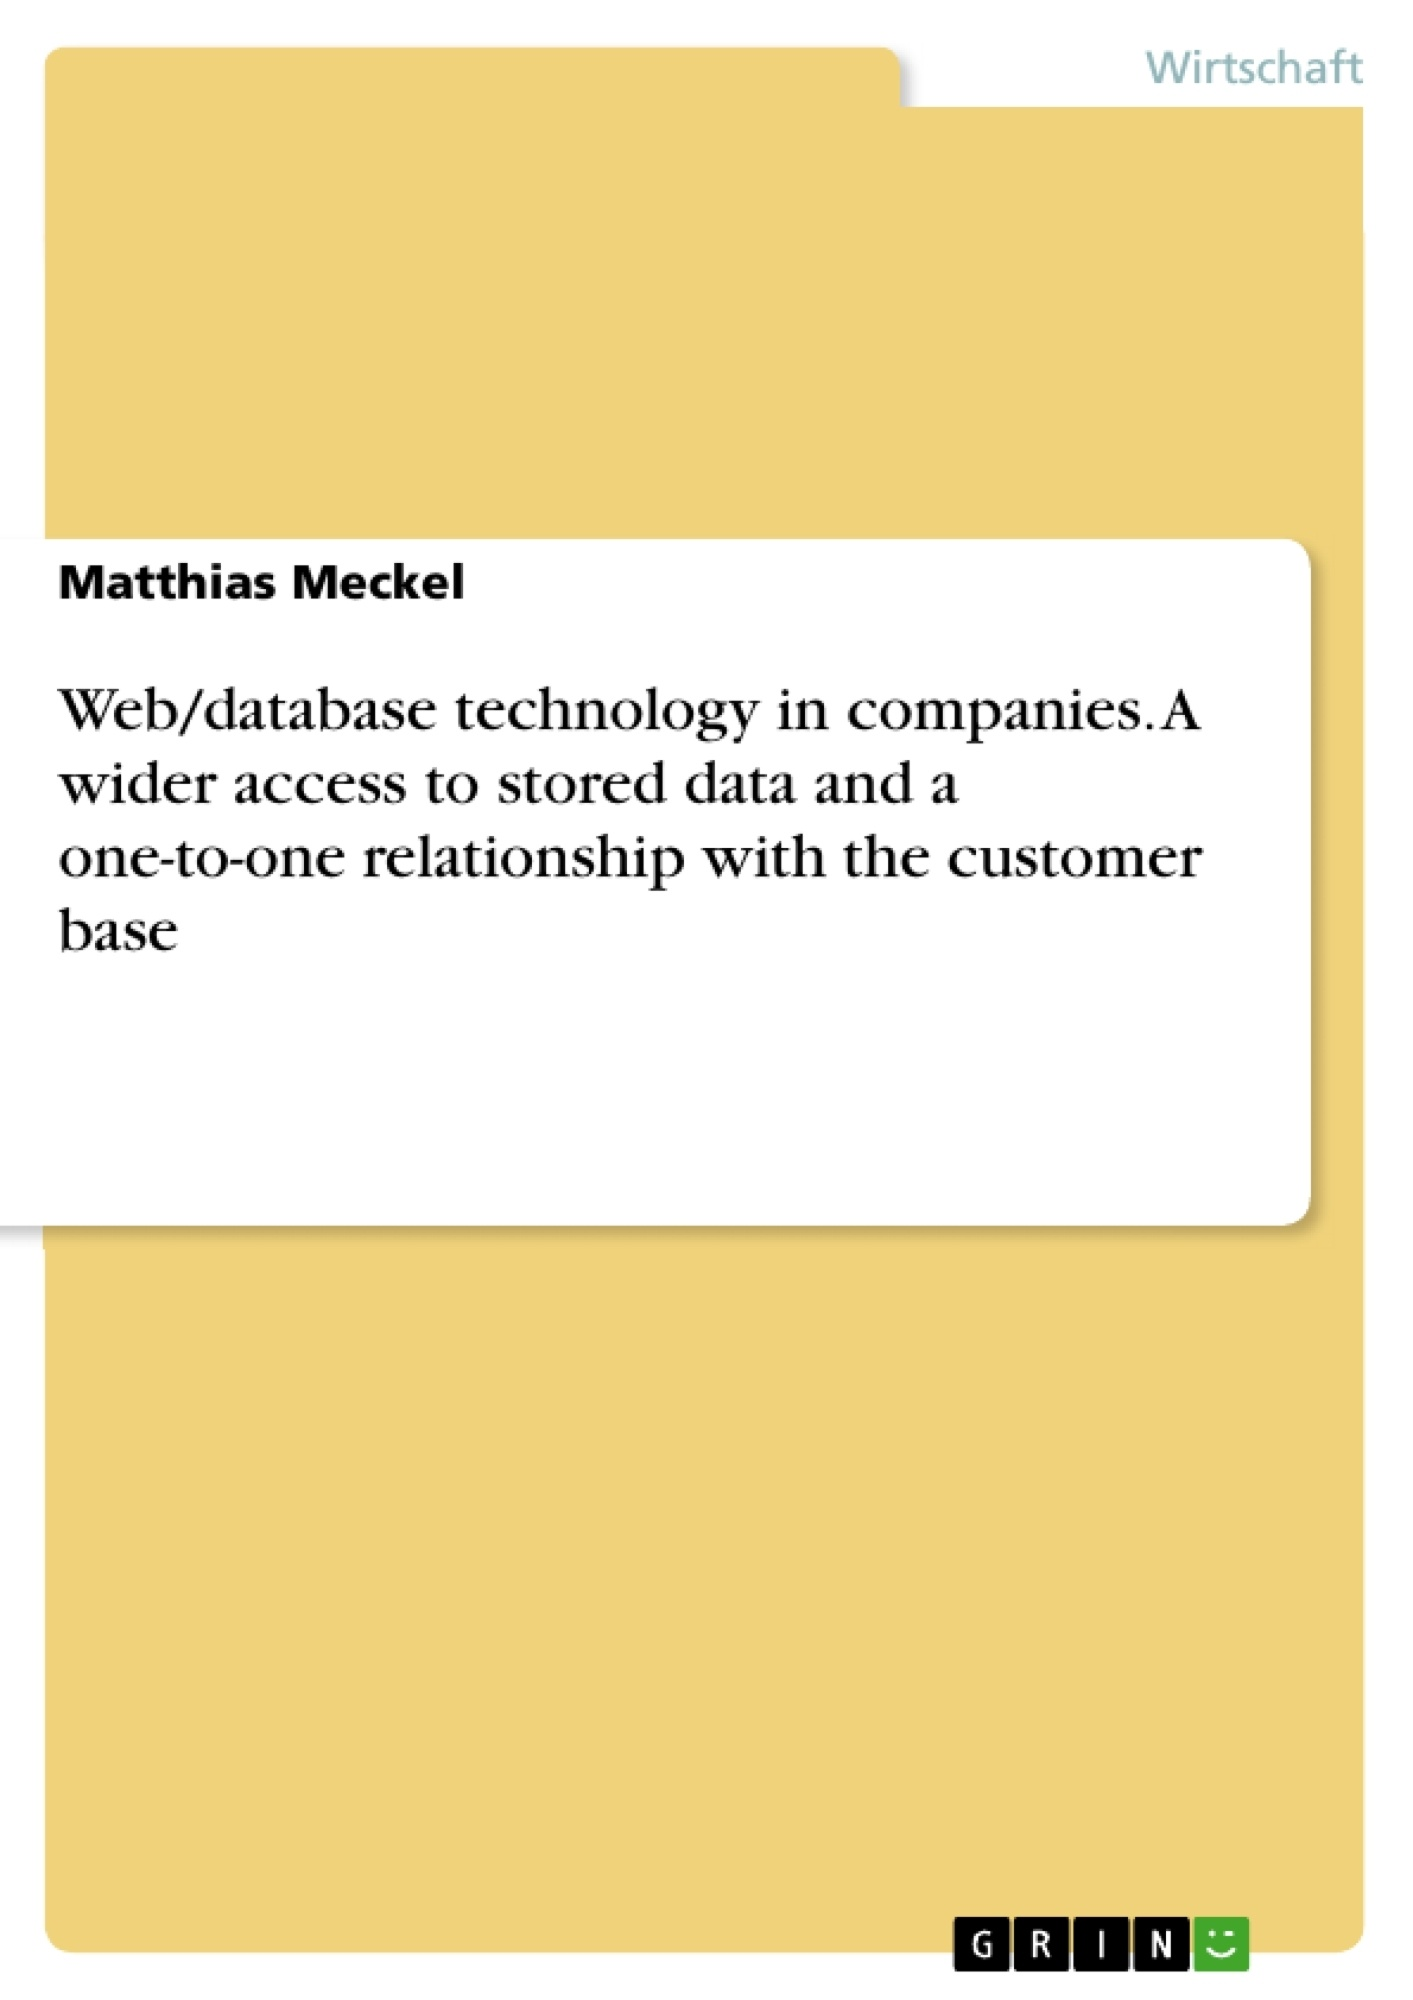 Titel: Web/database technology in companies. A wider access to stored data and a one-to-one relationship with the customer base